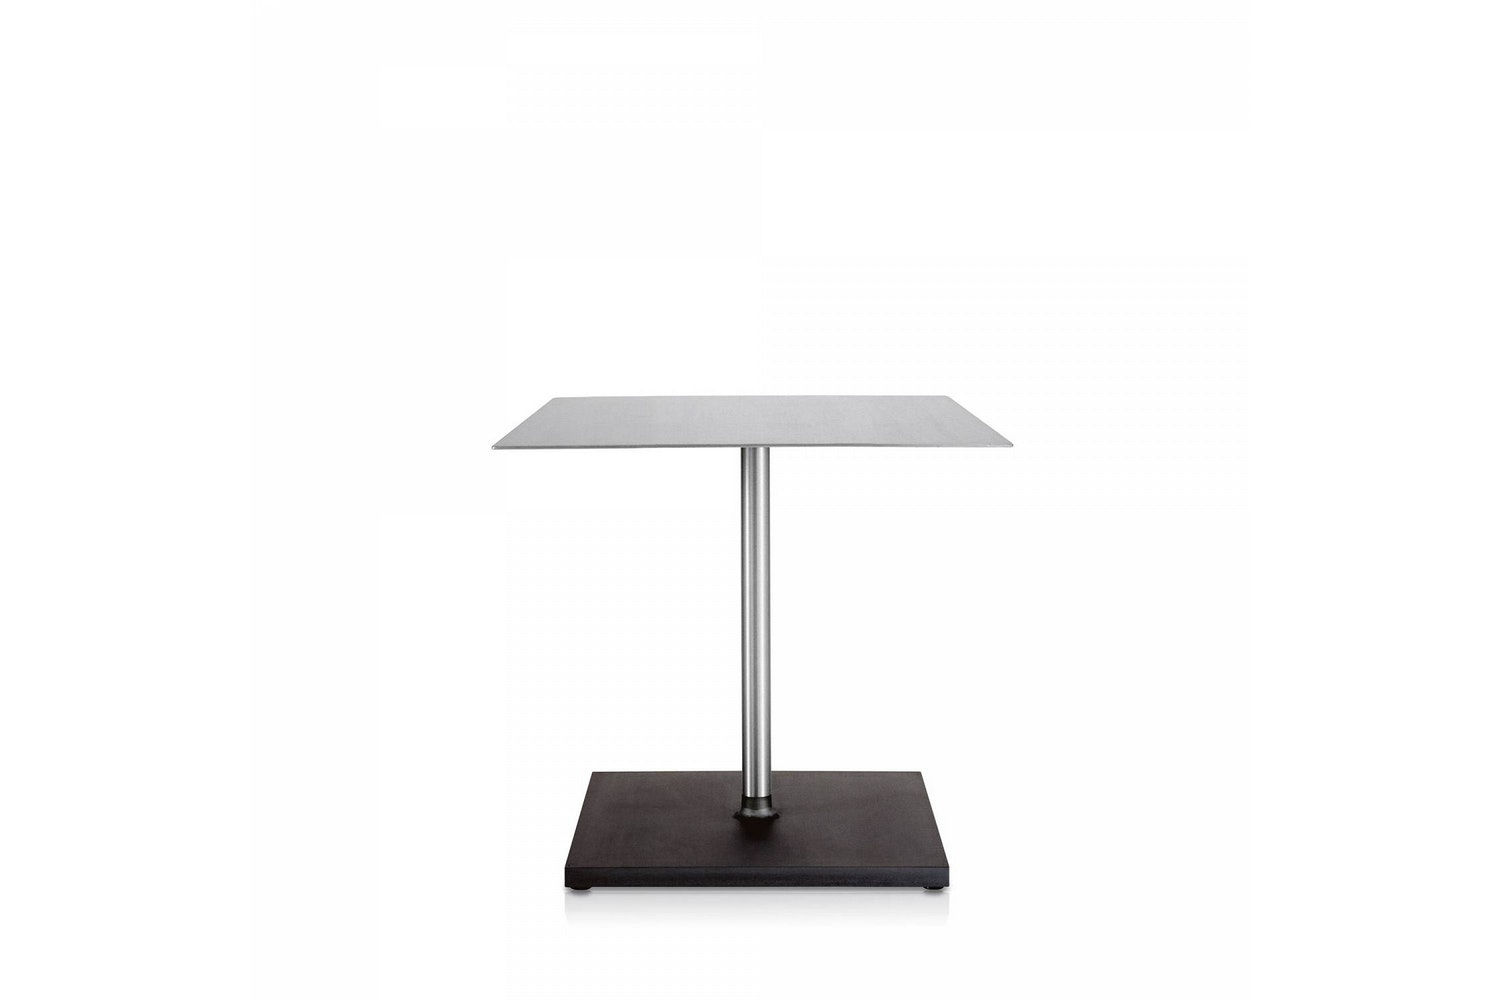 Café Table by Philippe Starck for Emeco